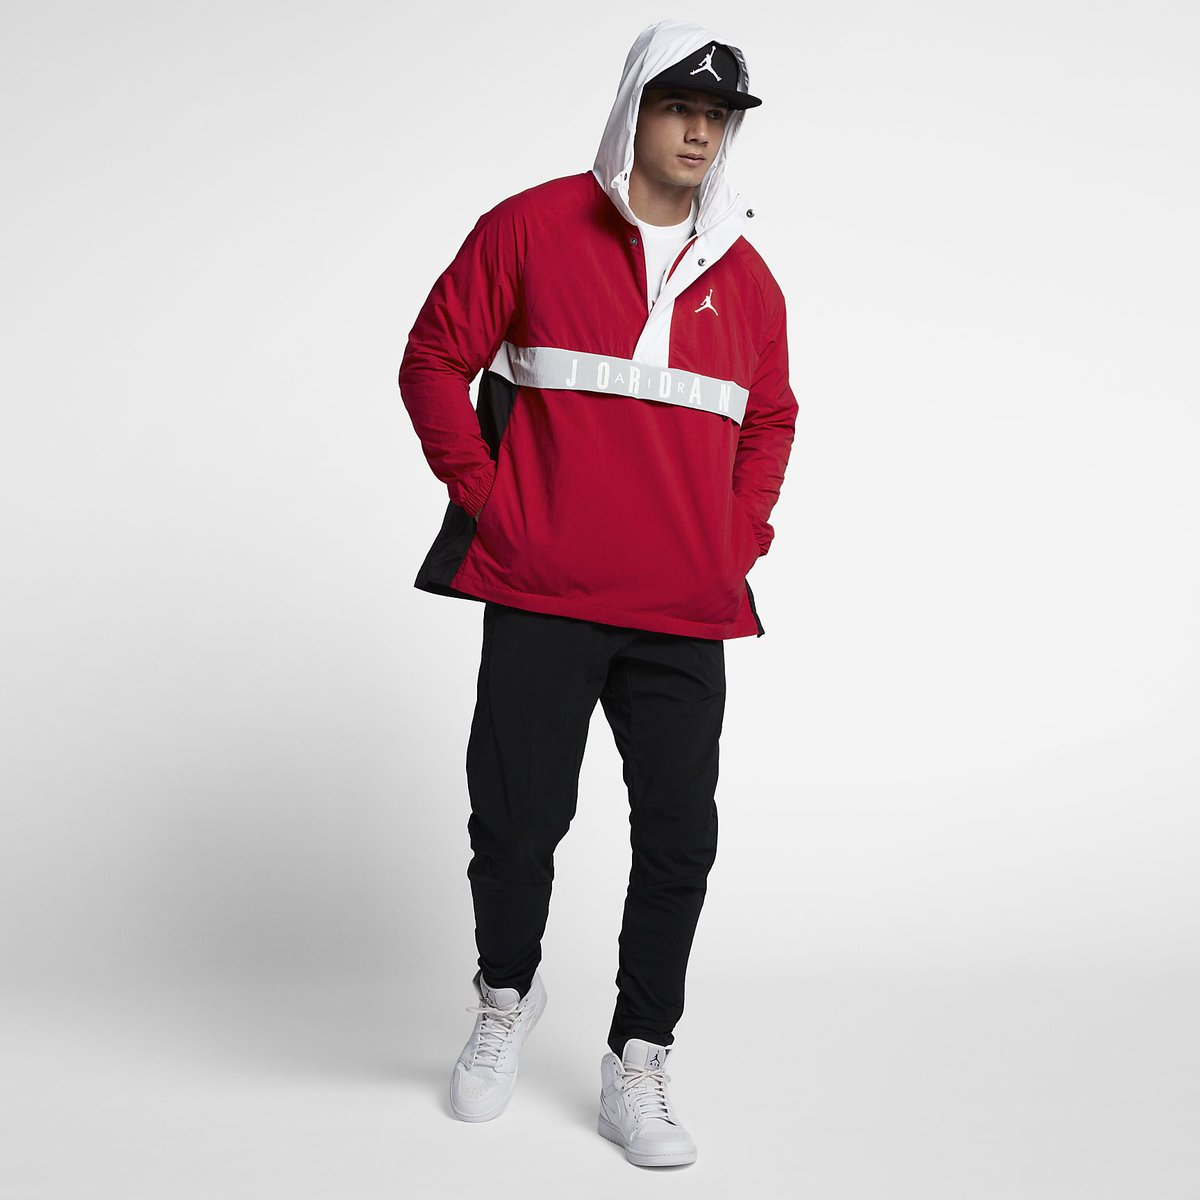 520022bb199 Air Jordan Anorak Jacket 'WINGS' is NOW available in 3 colors! ->  http://bit.ly/2yTUdq1 pic.twitter.com/vEKT3LxCef